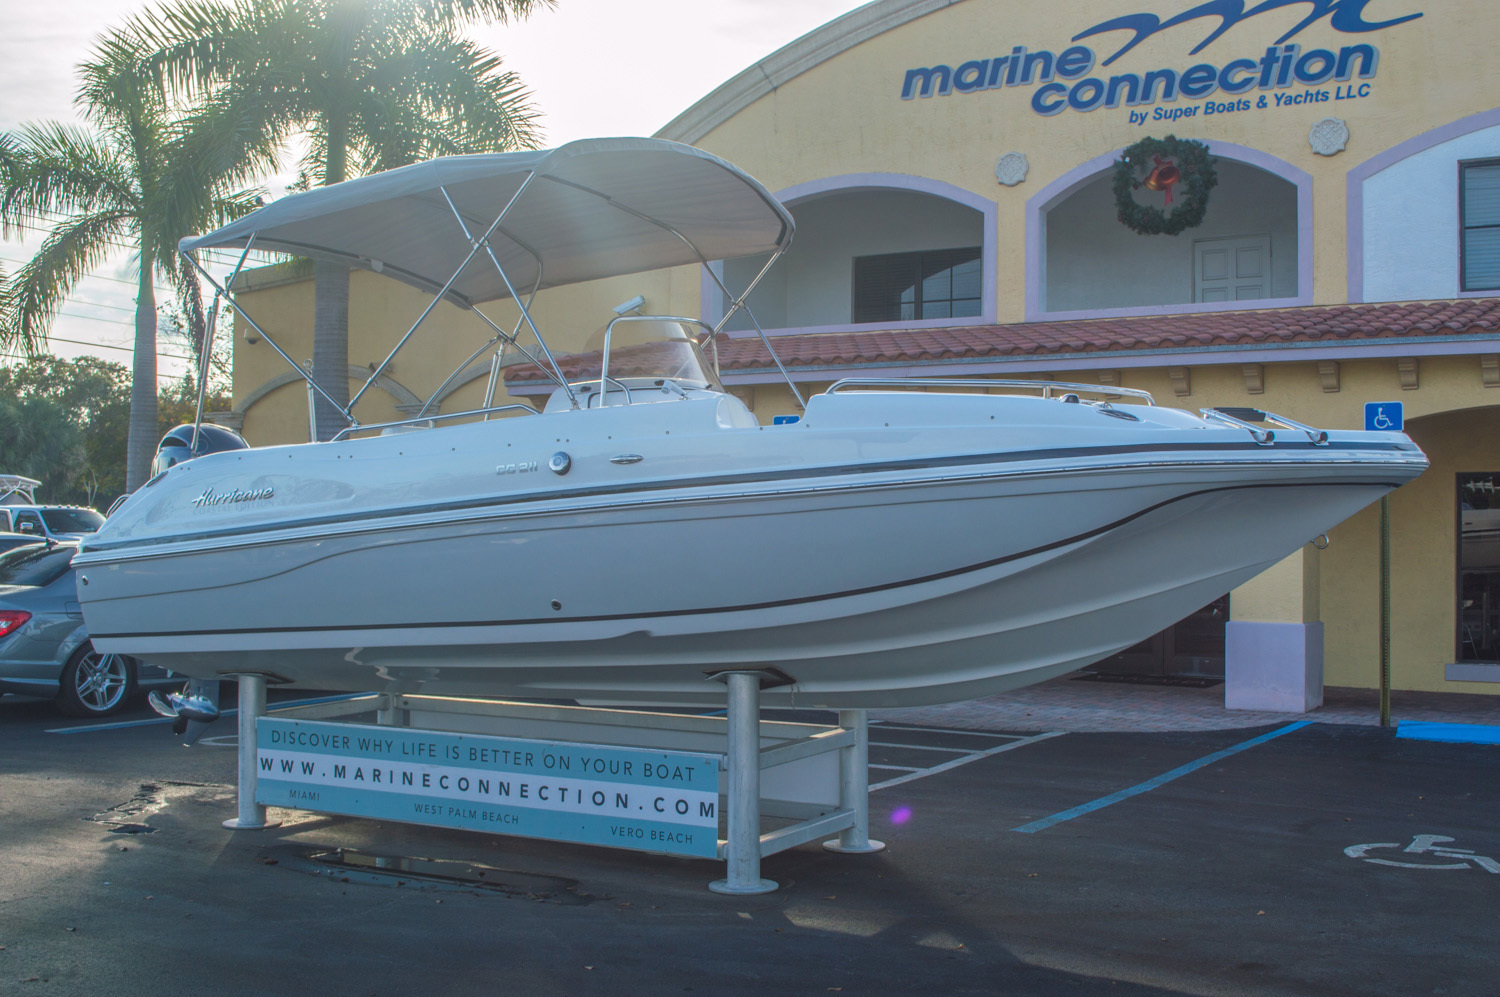 Thumbnail 1 for New 2016 Hurricane CC211 Center Consle boat for sale in West Palm Beach, FL